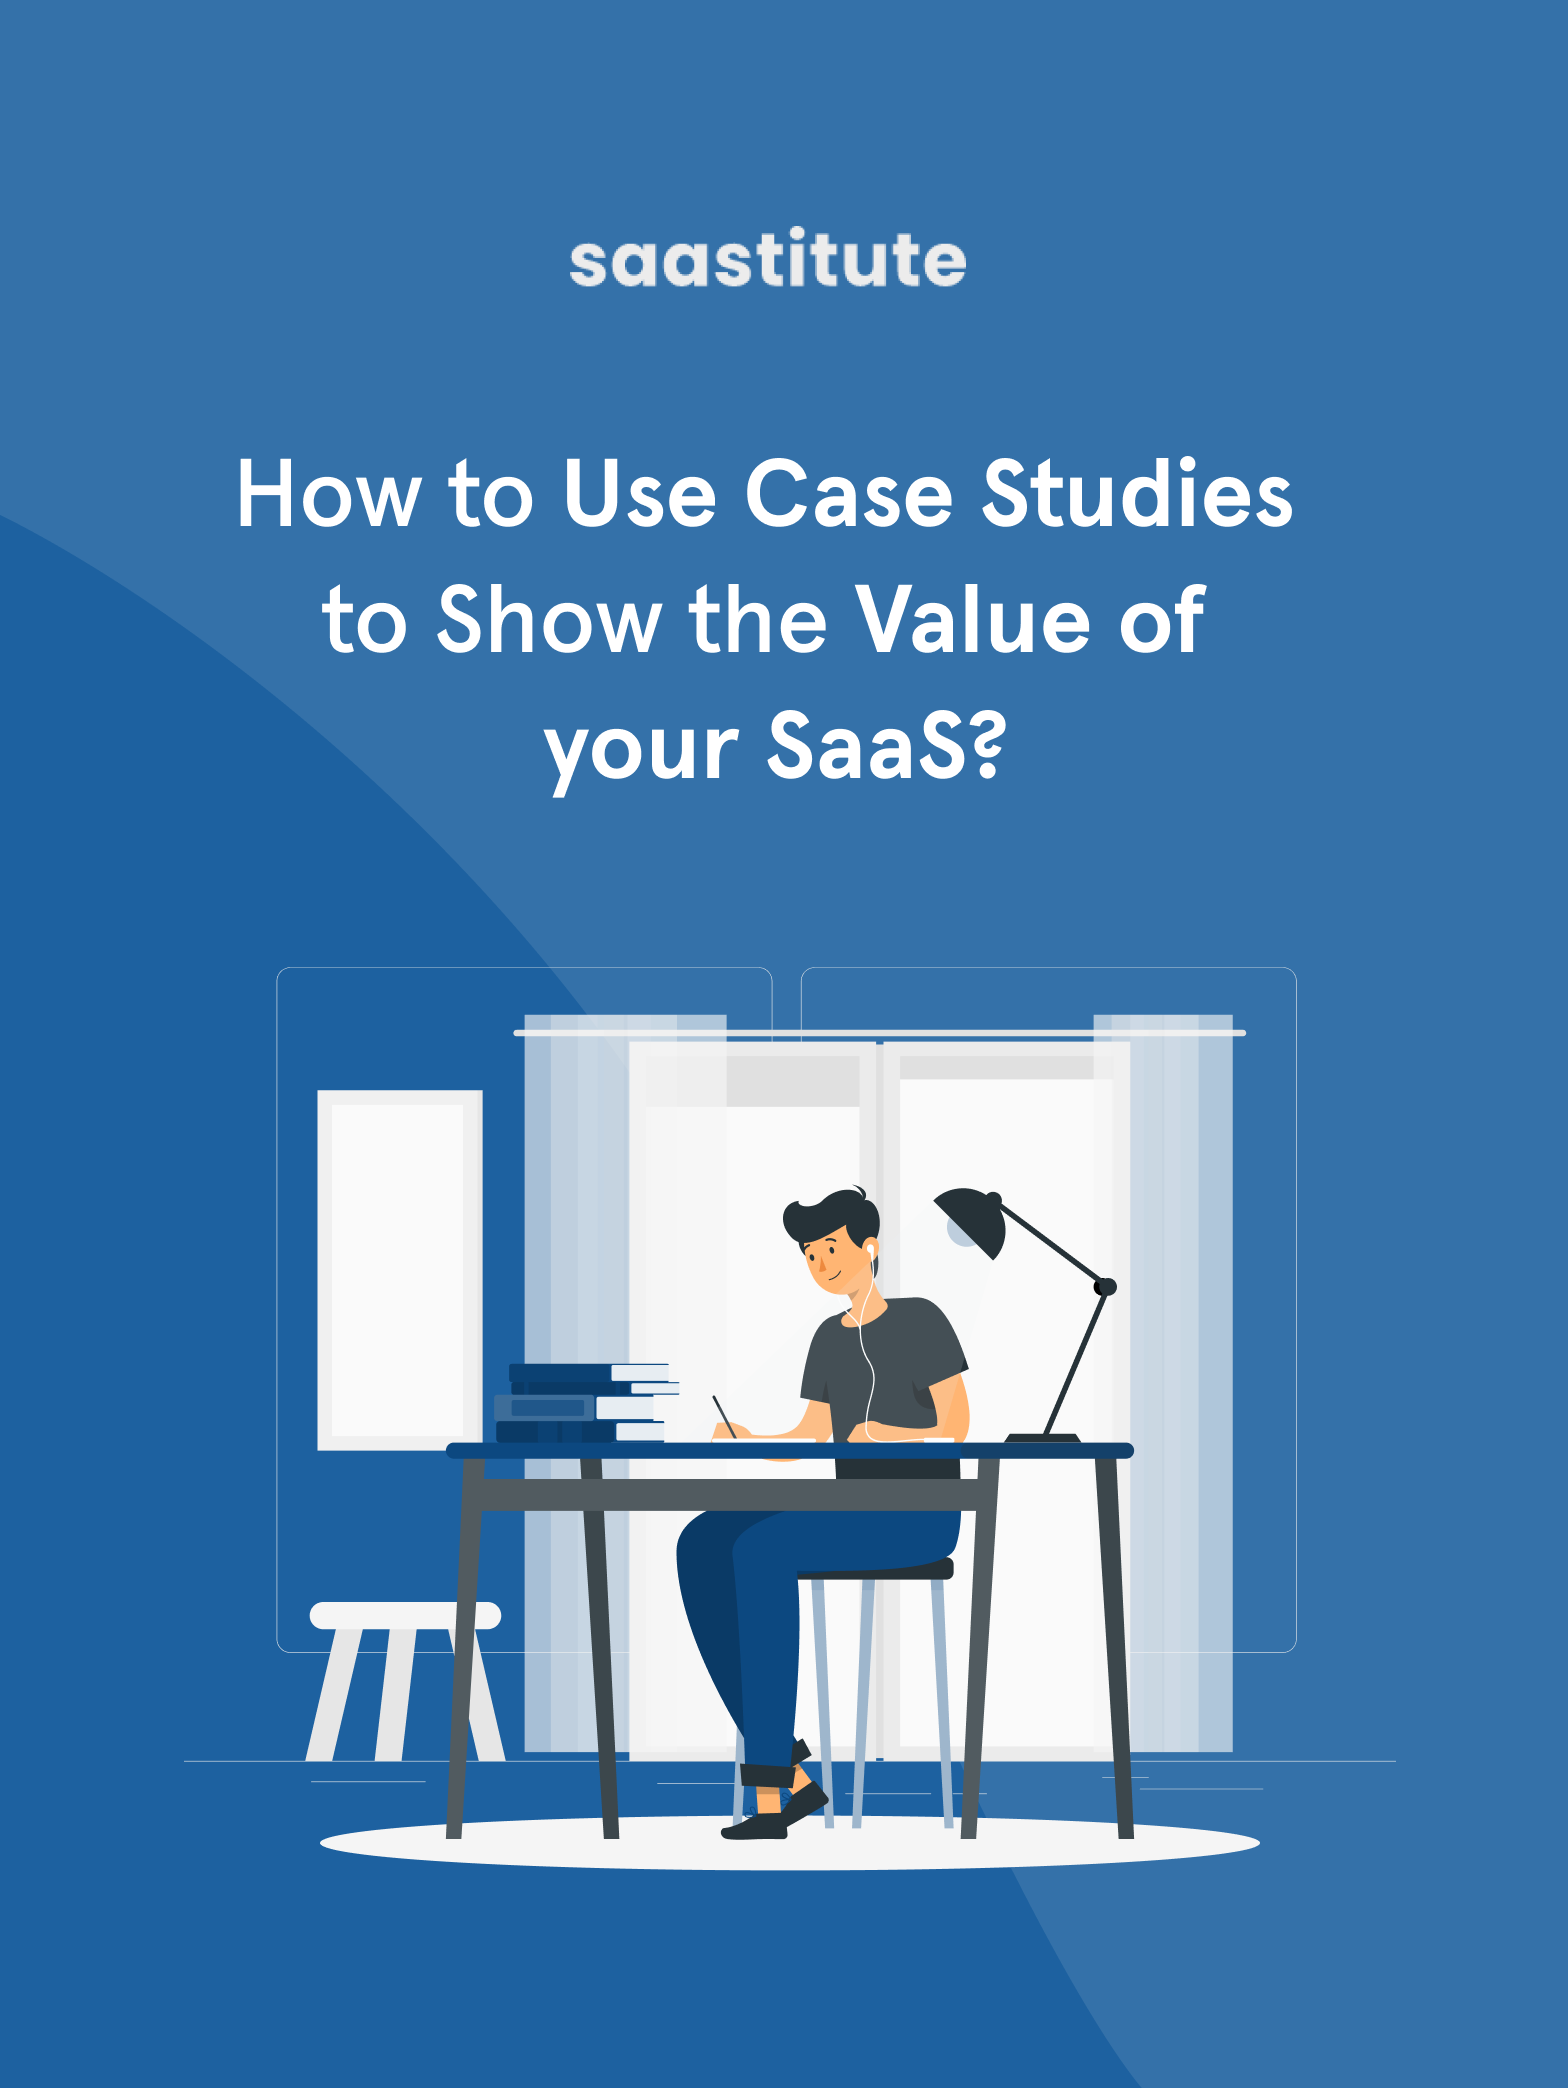 How to Use Case Studies to Show the Value of your SaaS?